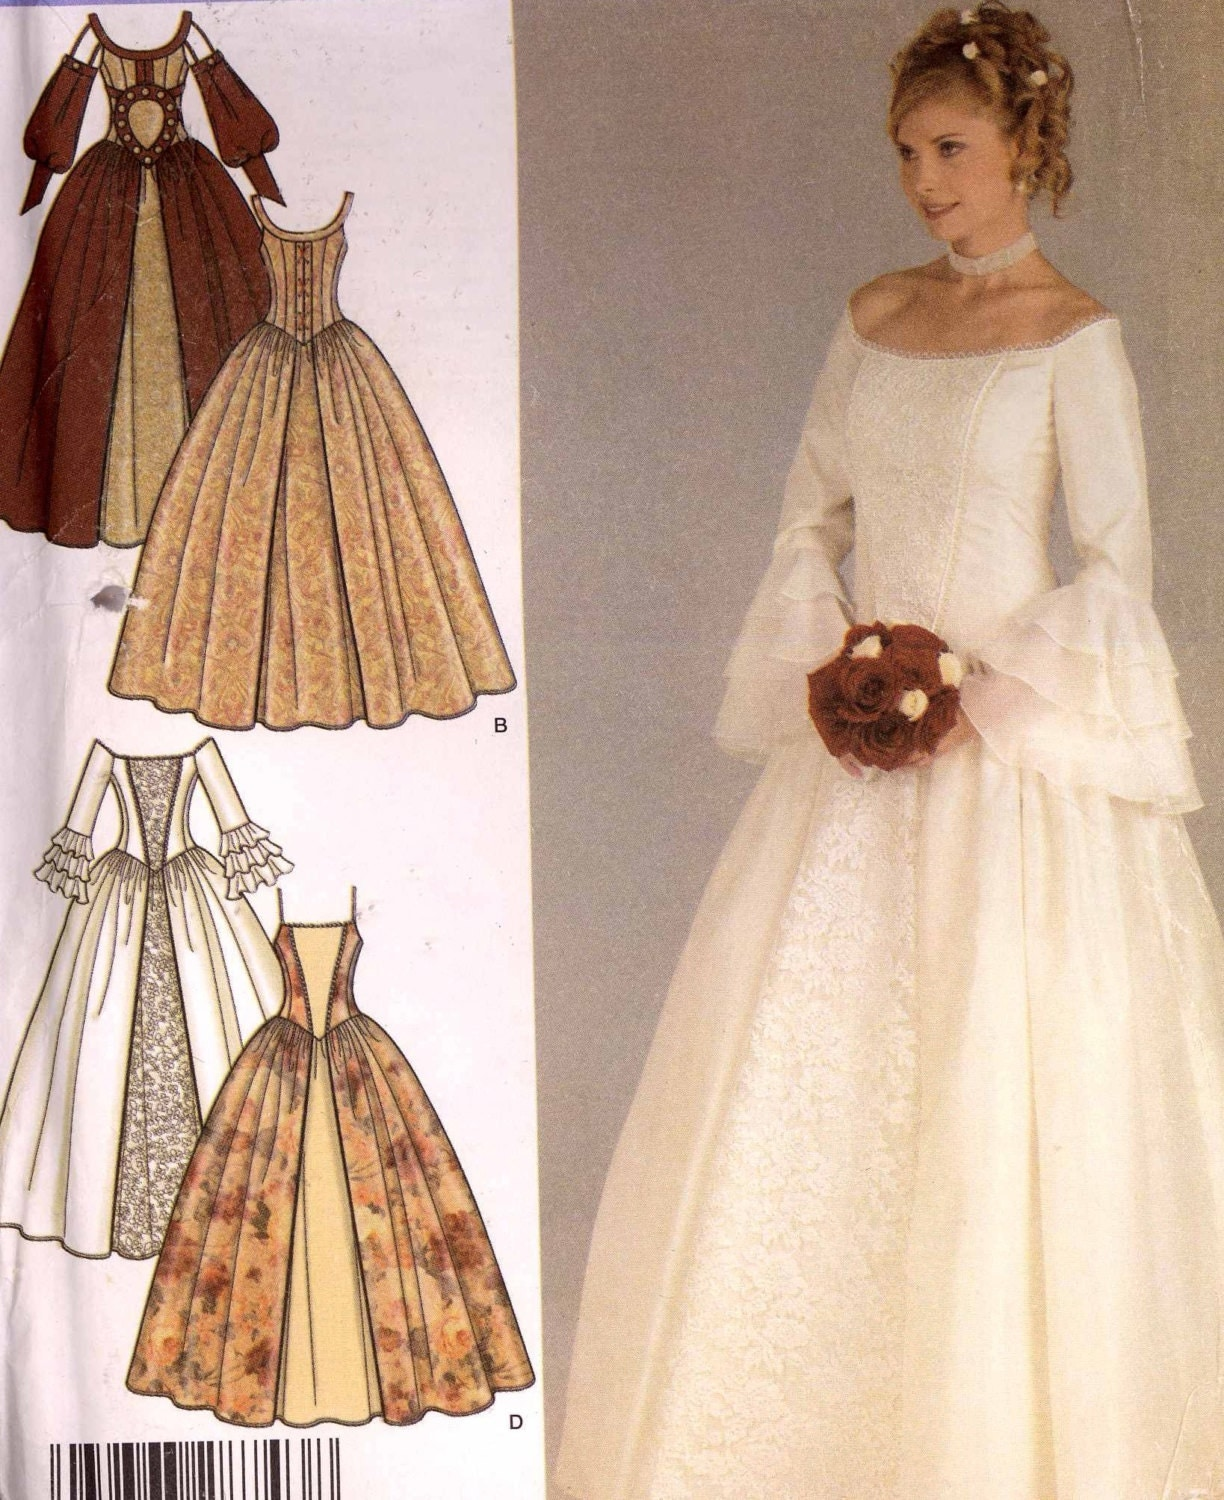 Renaissance Bridal Gown Sewing Pattern Princess Dress: Gorgeous Wedding Dress Sewing Pattern Renaissance Style